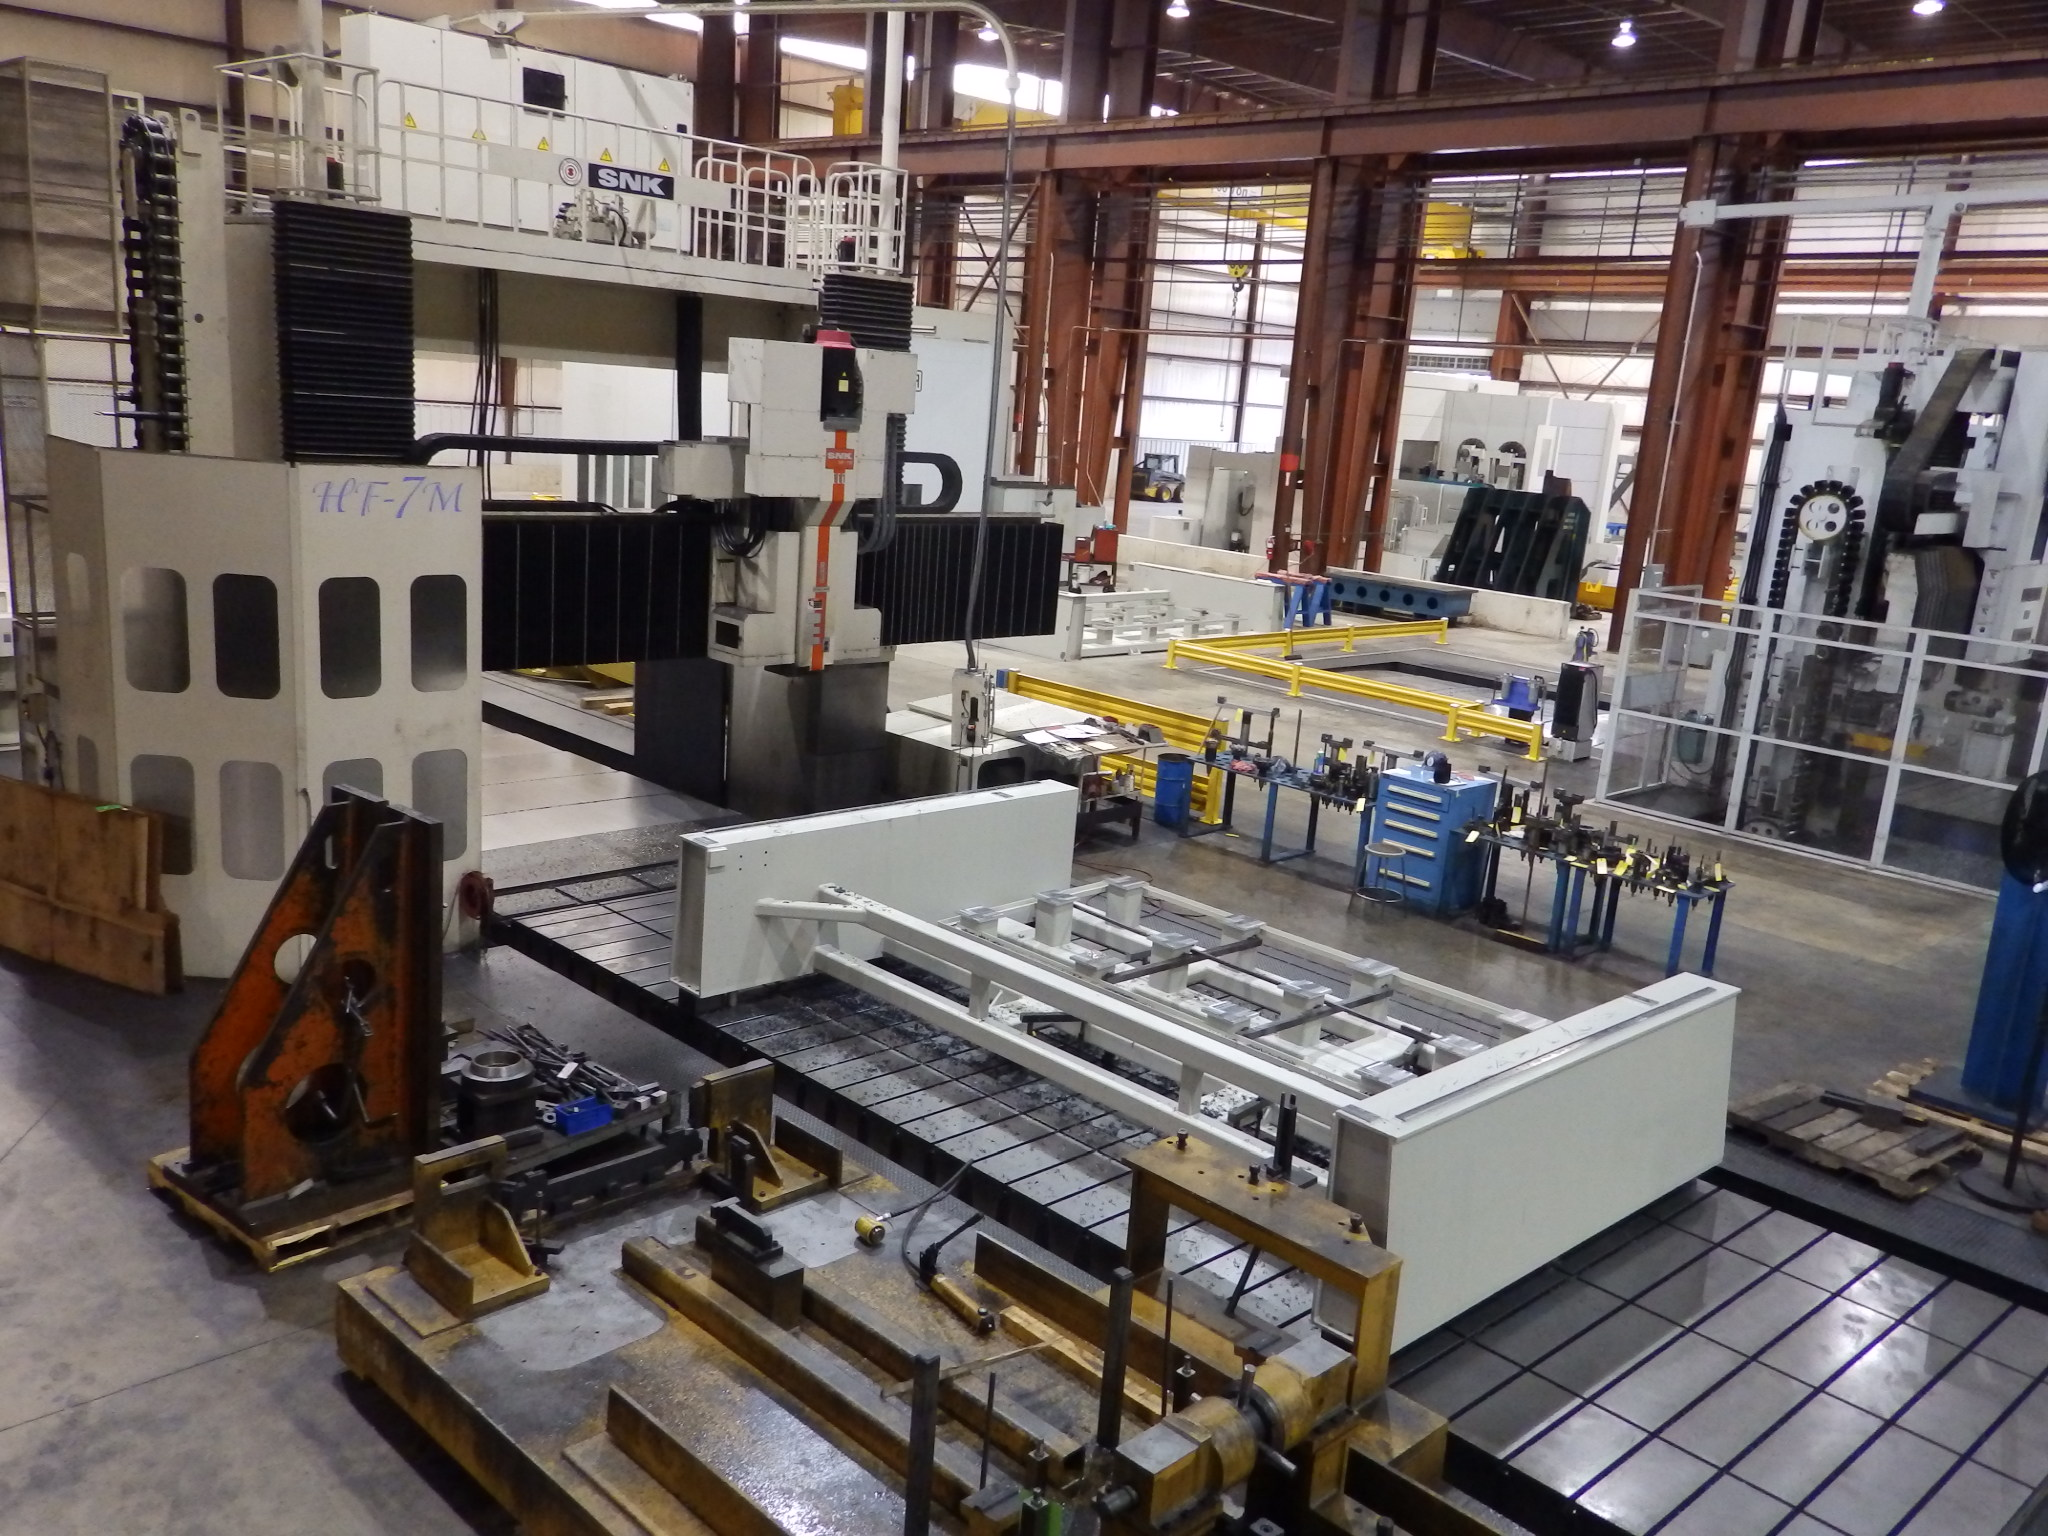 Large Machining SNK HF-7VM Vertical Gantry Mill Profile View